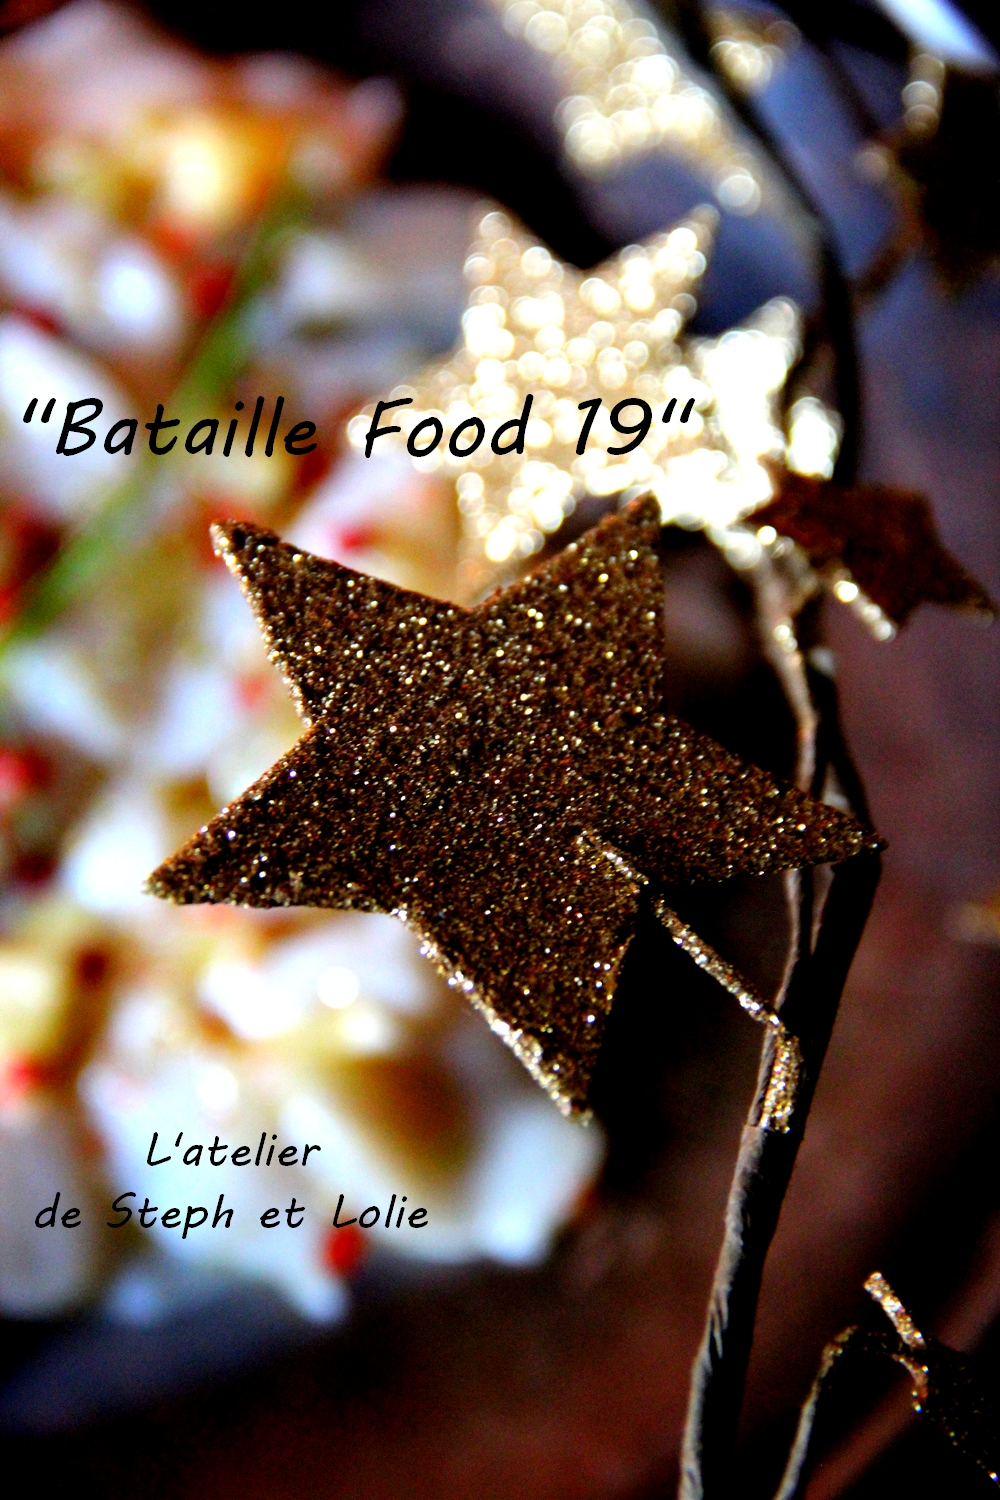 bataille food 19